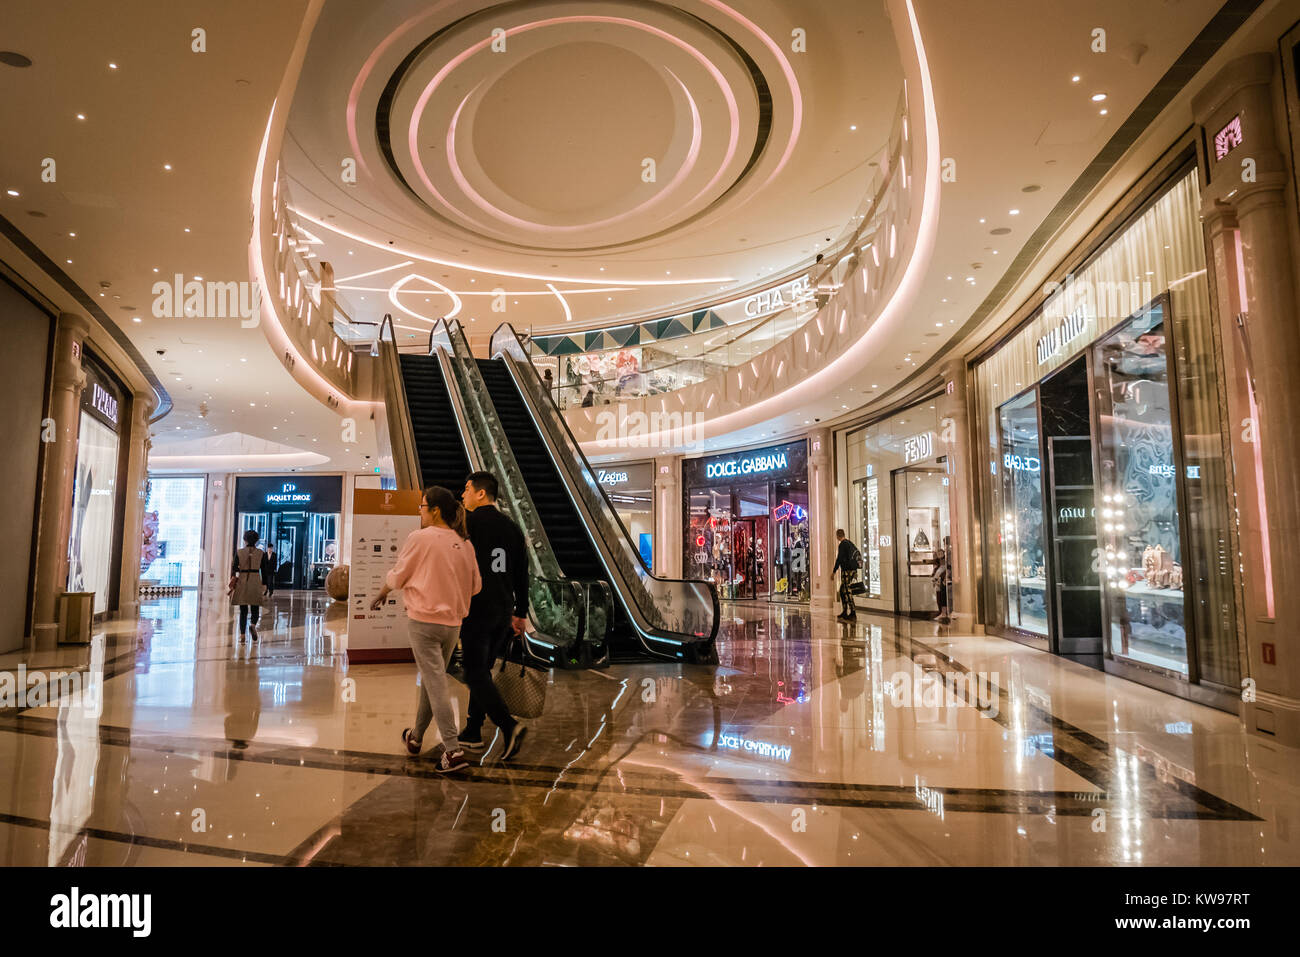 969402d1fda Mall Shopping Macau Stock Photos & Mall Shopping Macau Stock Images ...